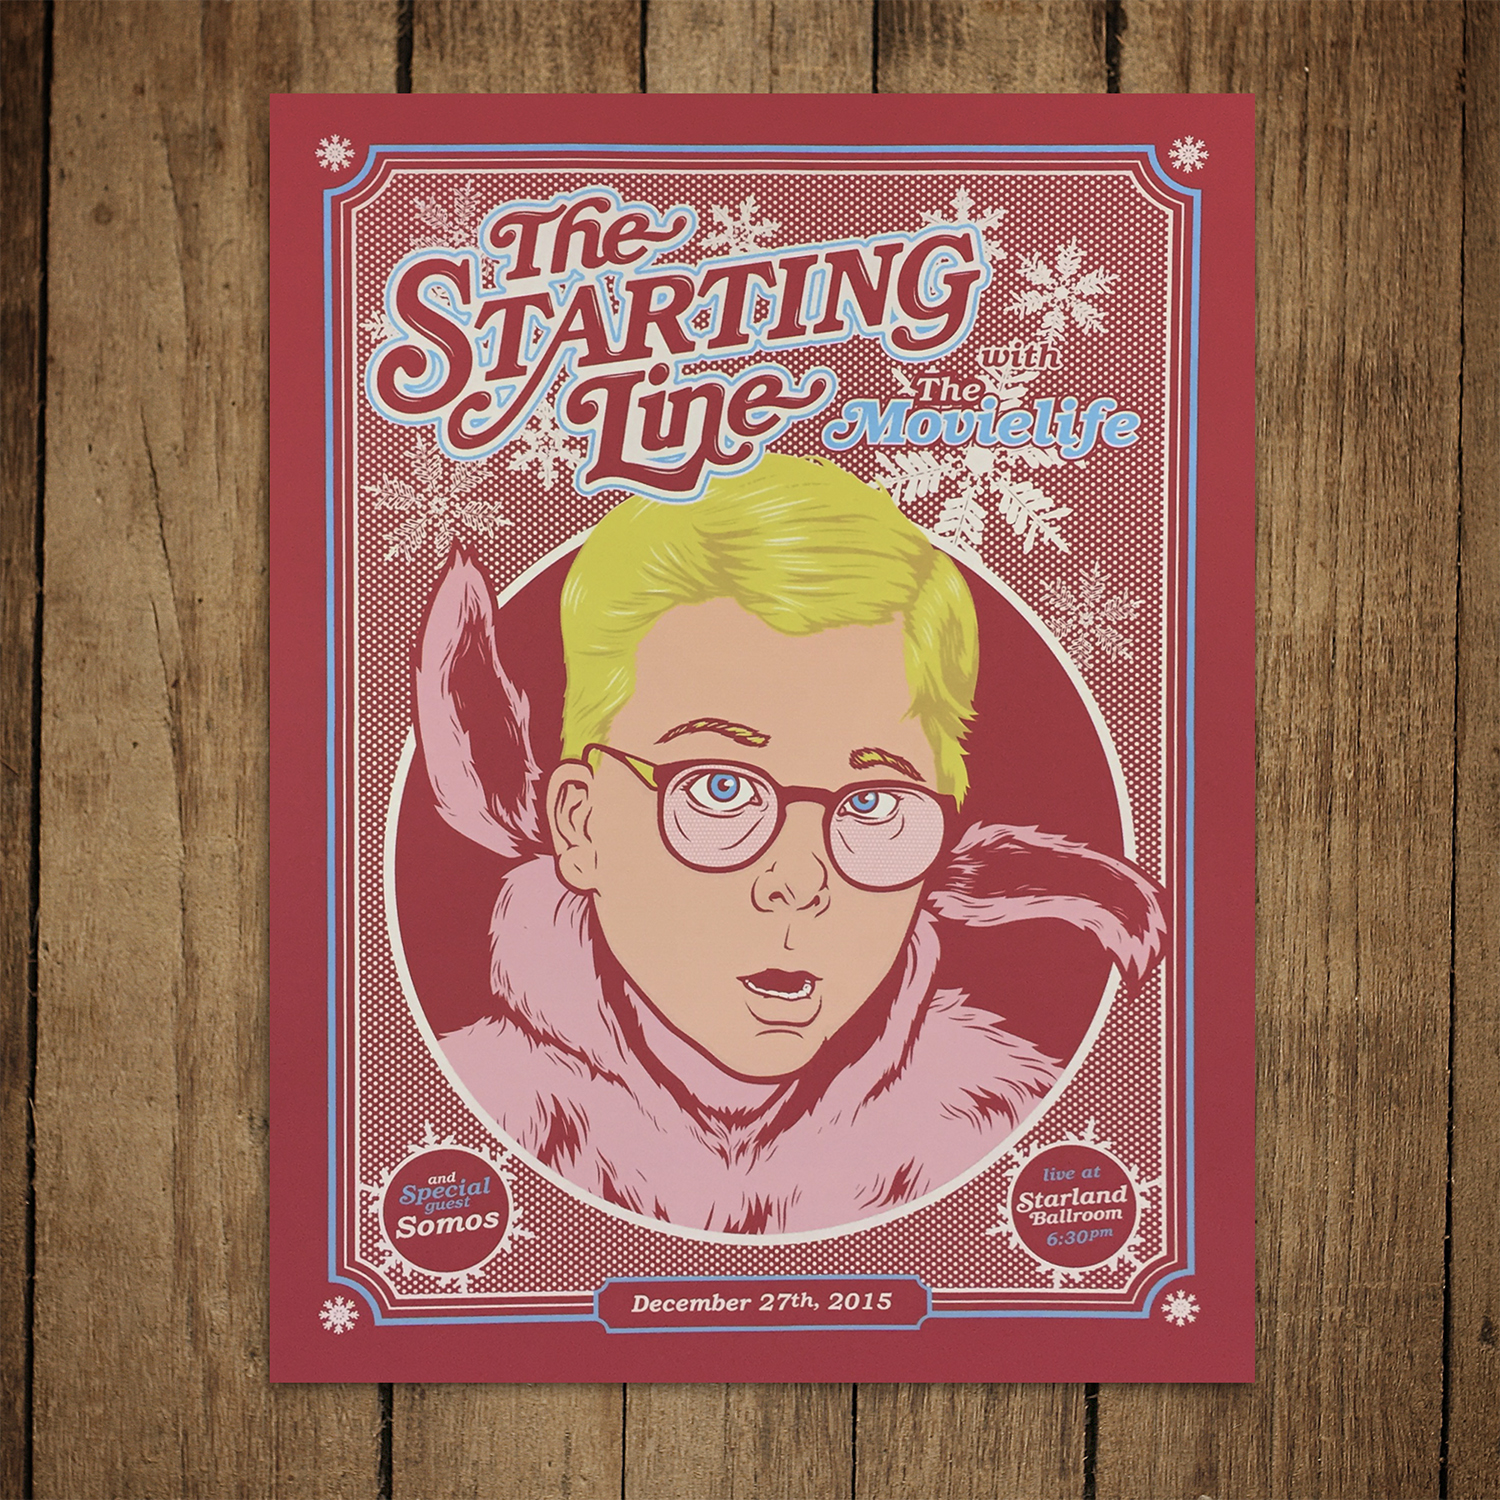 the starting line movielife somos 2015 holiday show gig poster